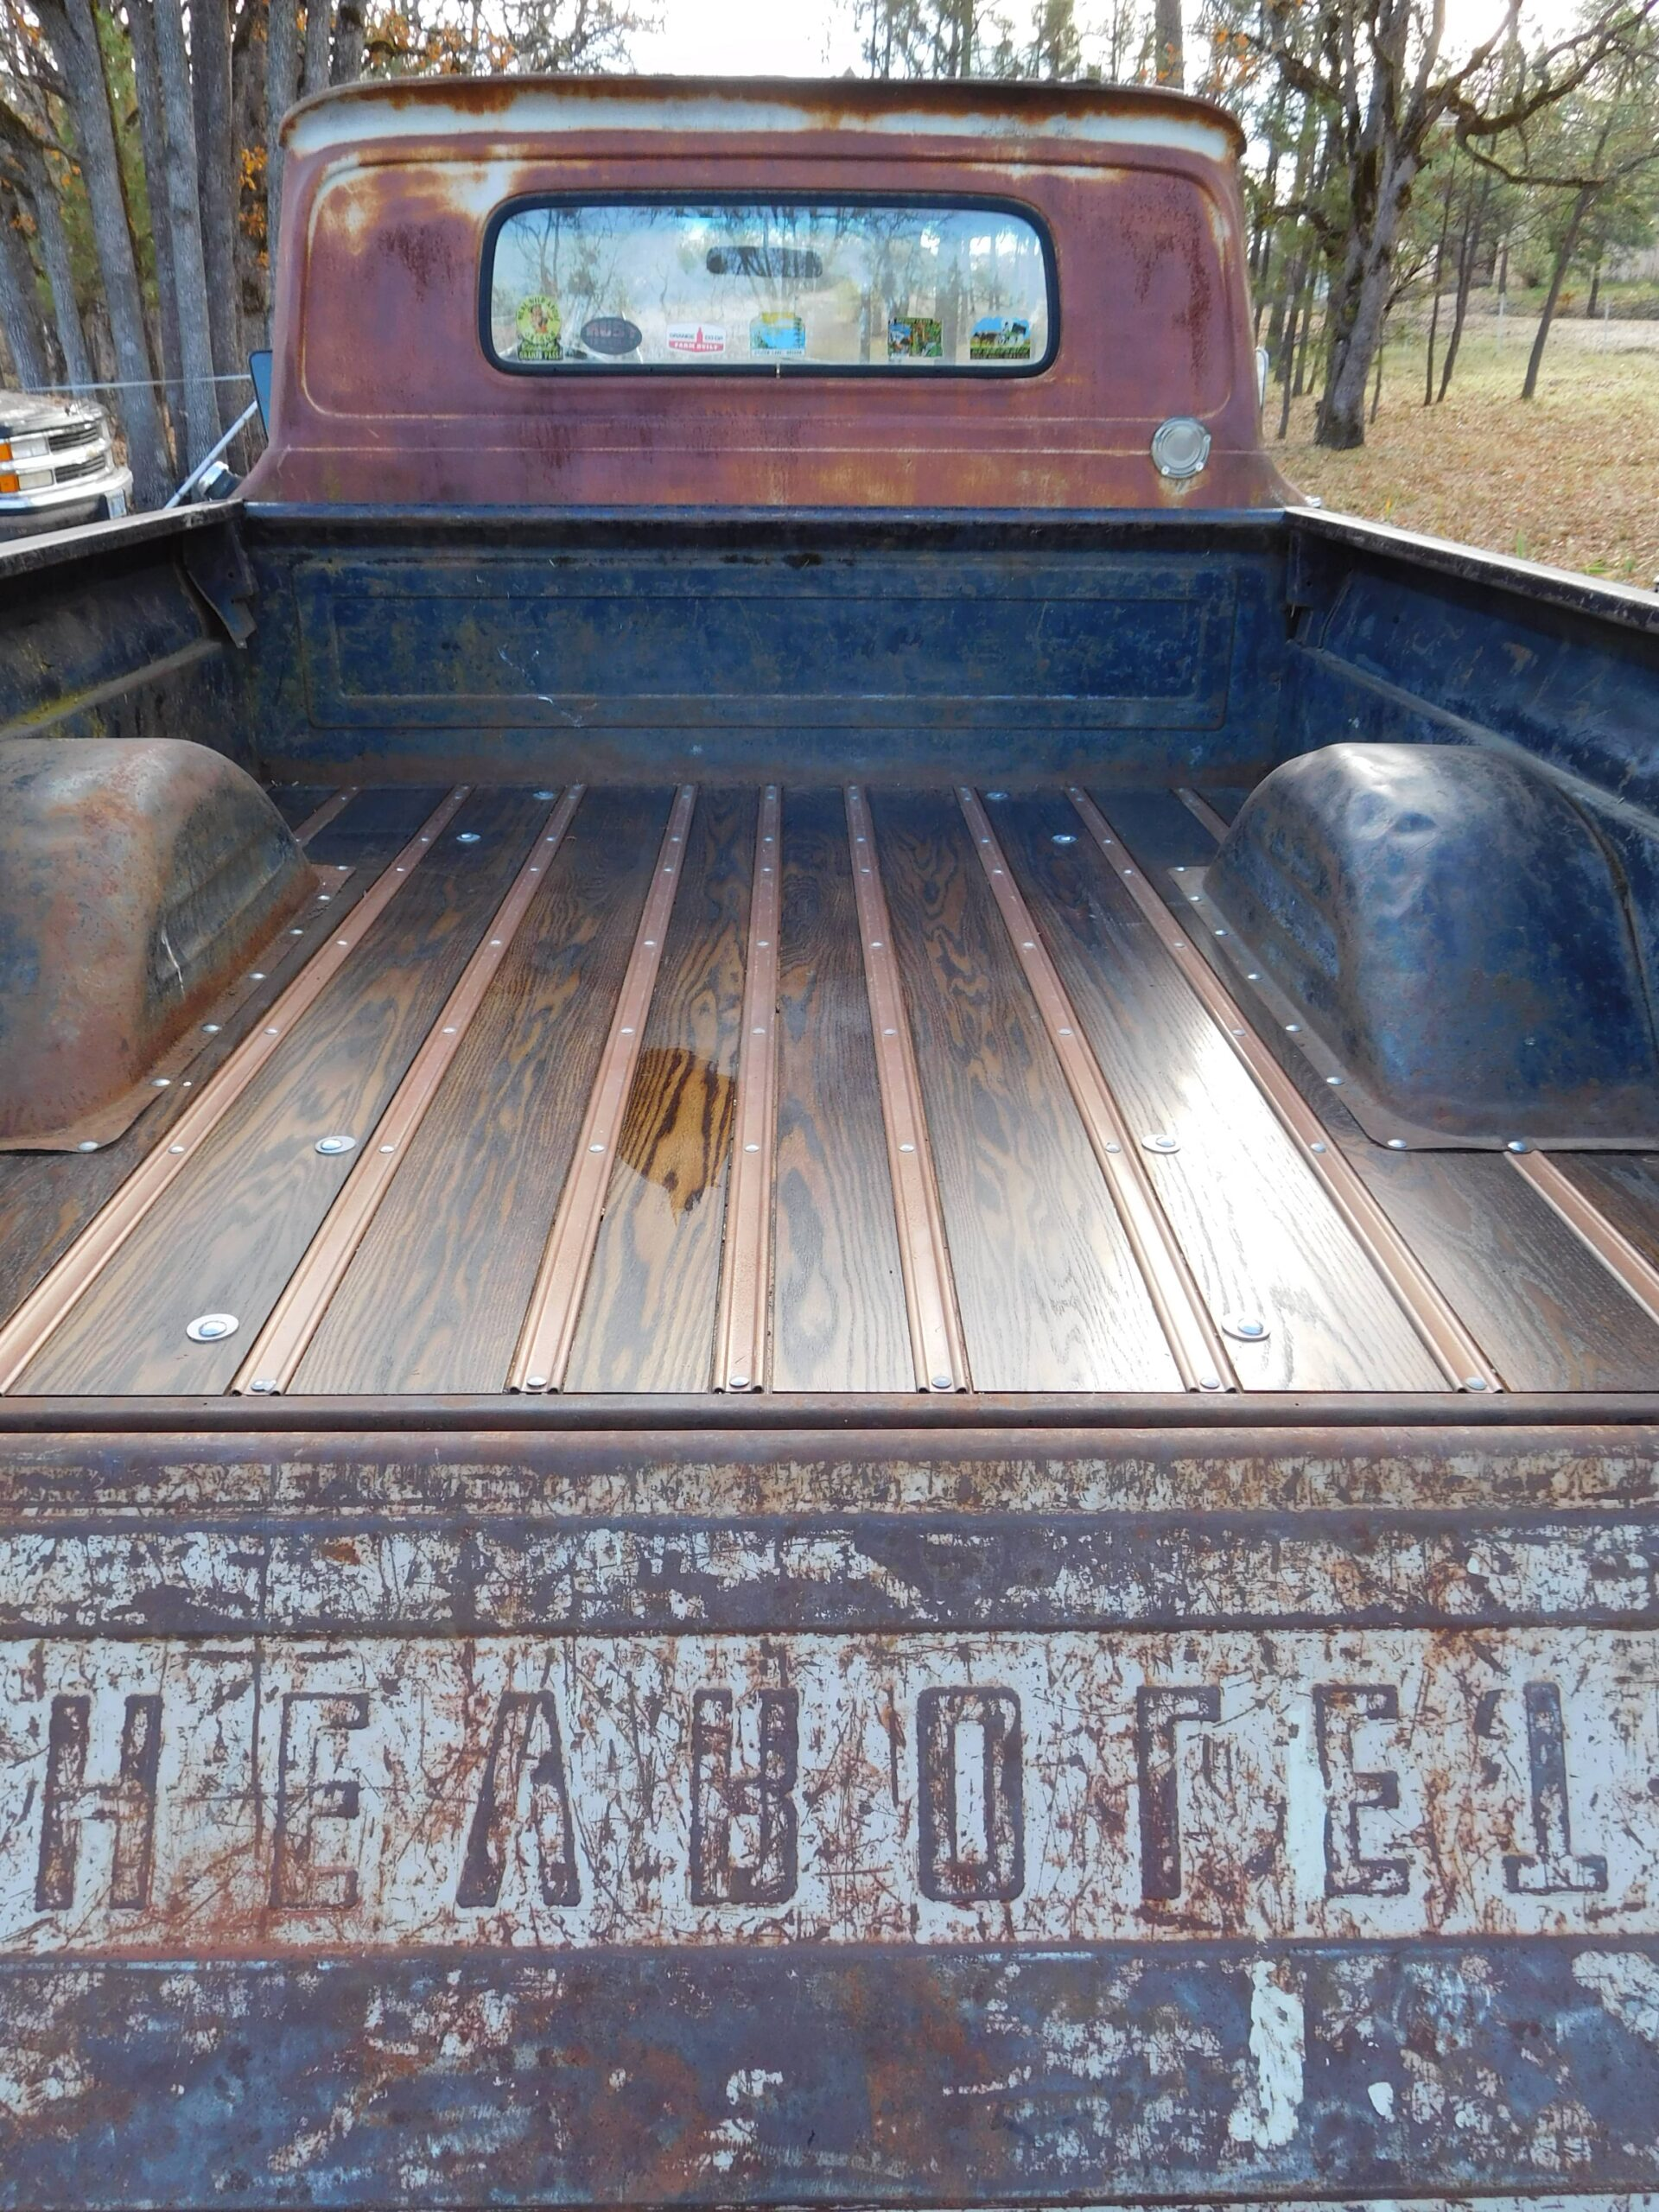 John Ruth - Eagle Point, OR - 1966 Chevy K10